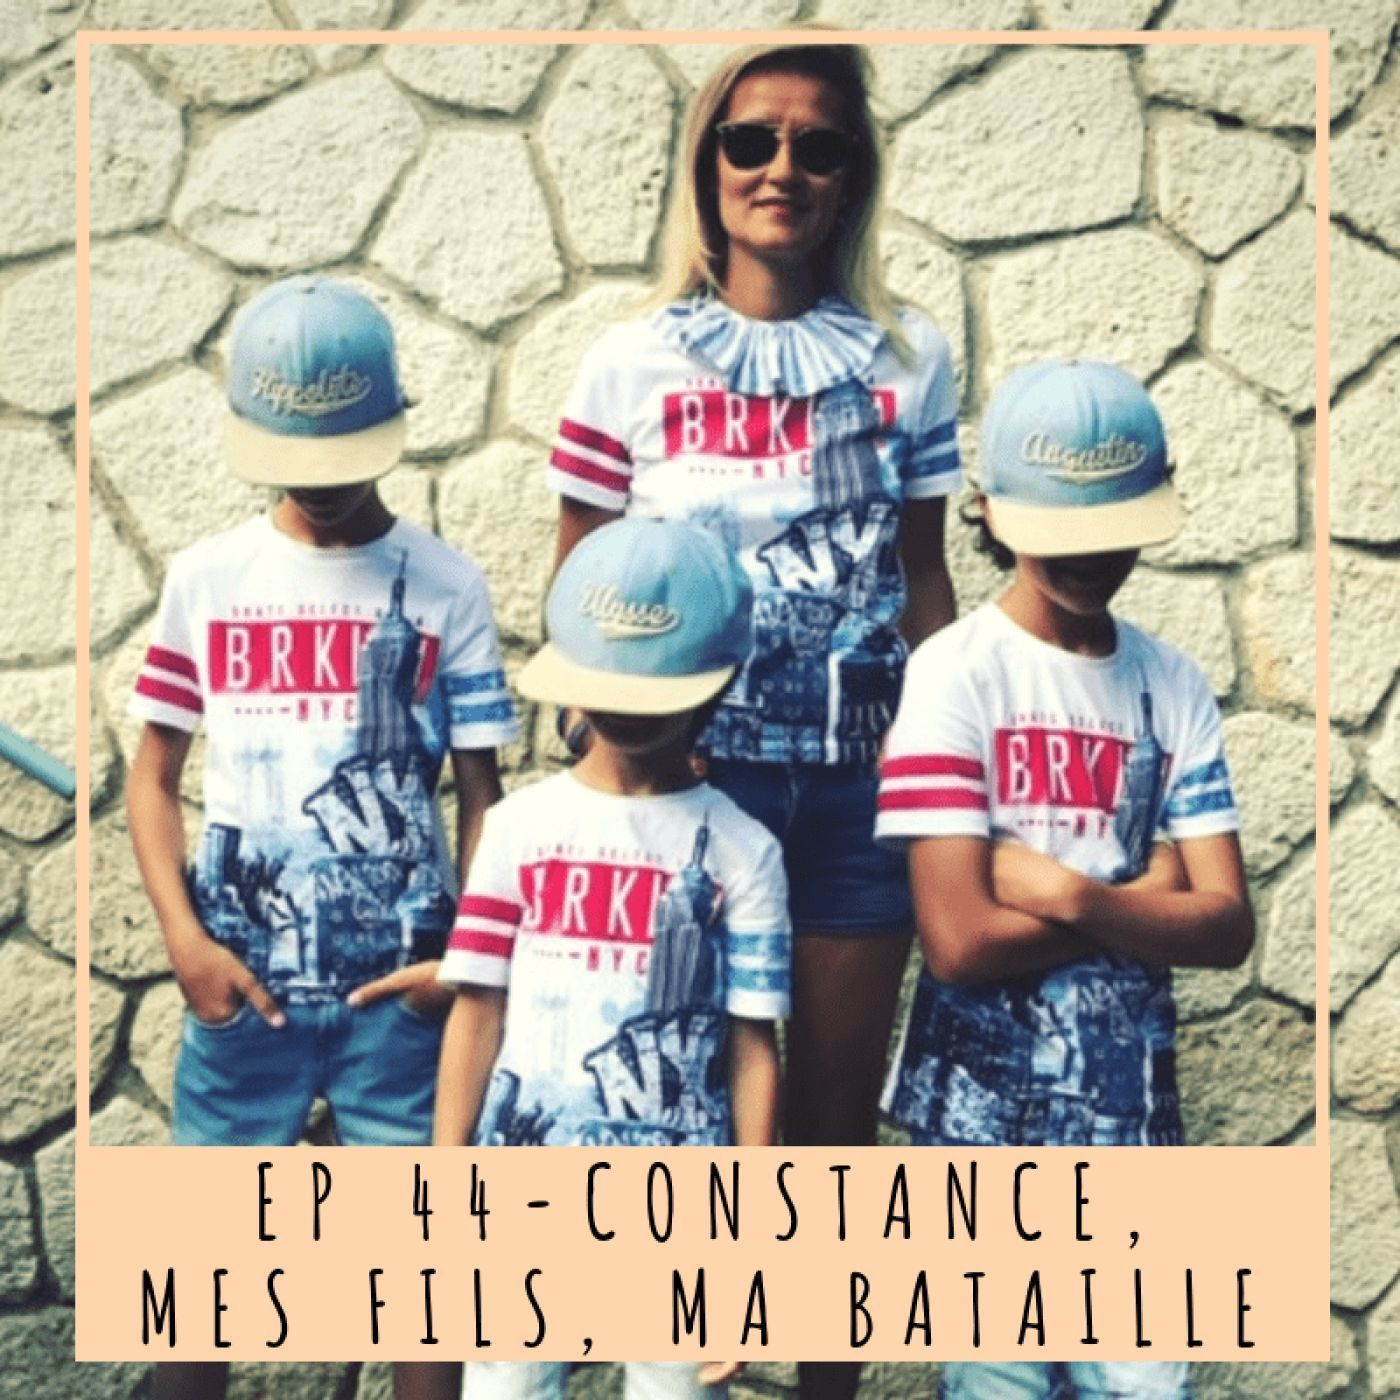 EP 44- CONSTANCE, MES FILS, MA BATAILLE